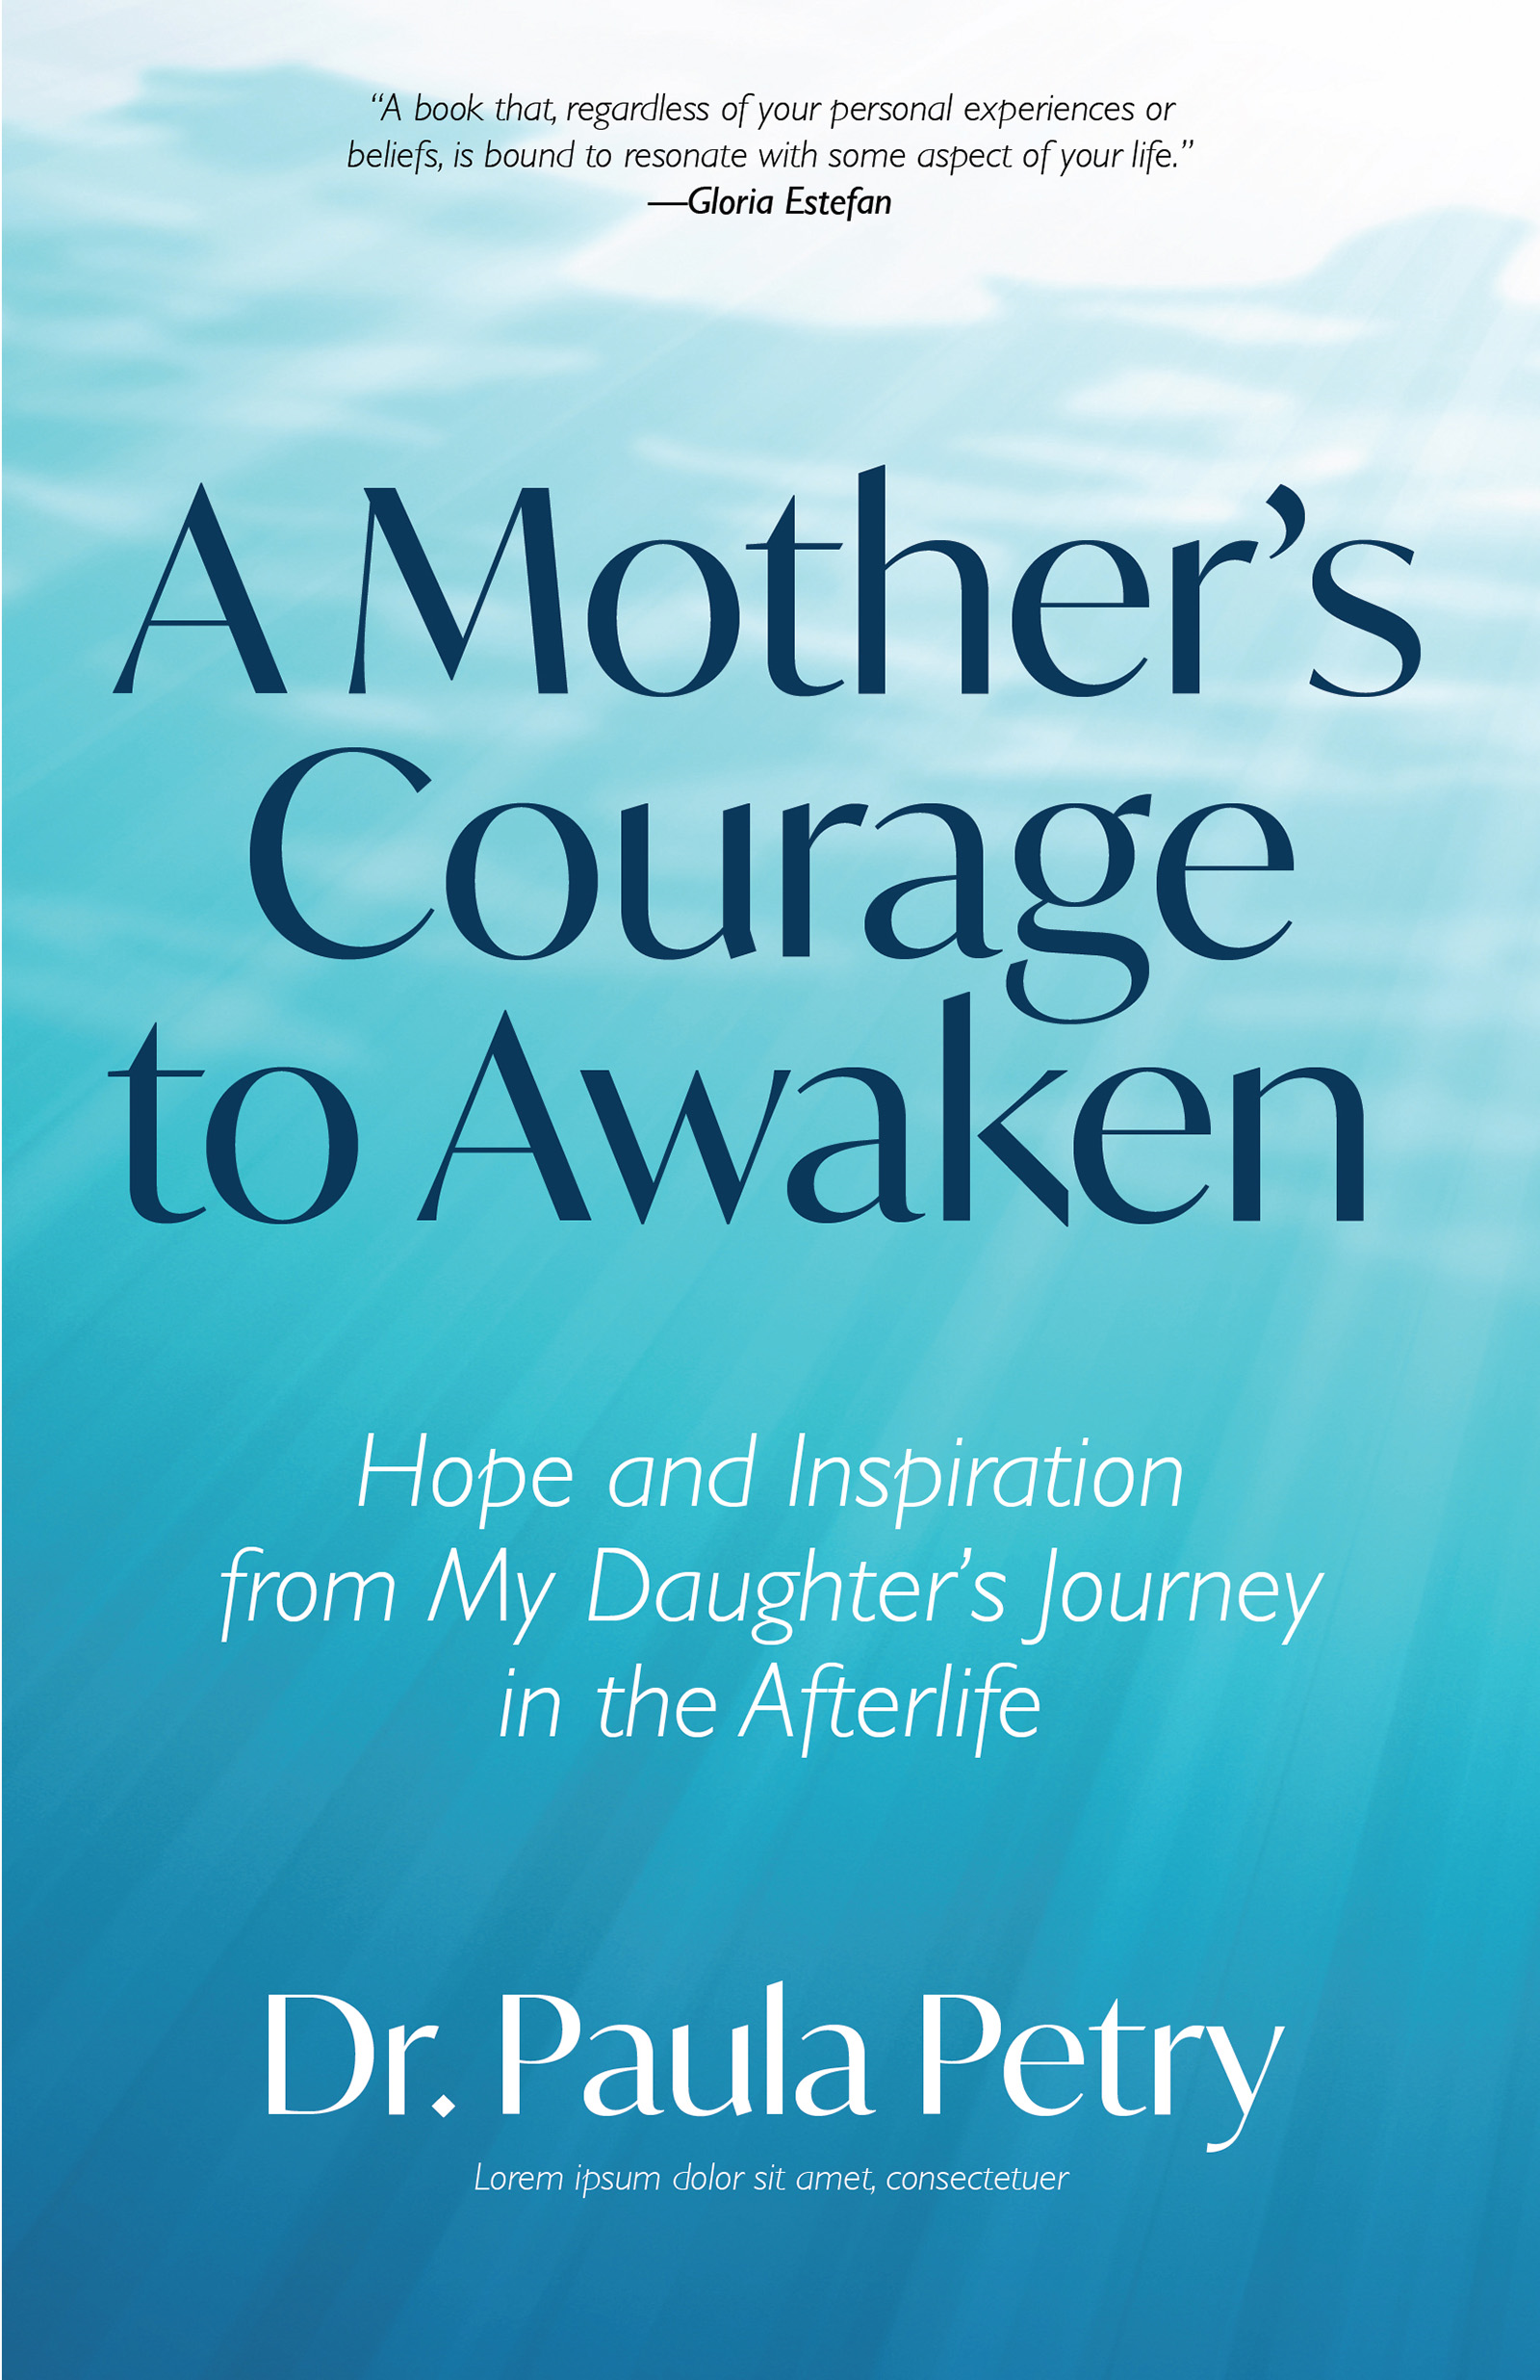 A Mother's Courage to Awaken